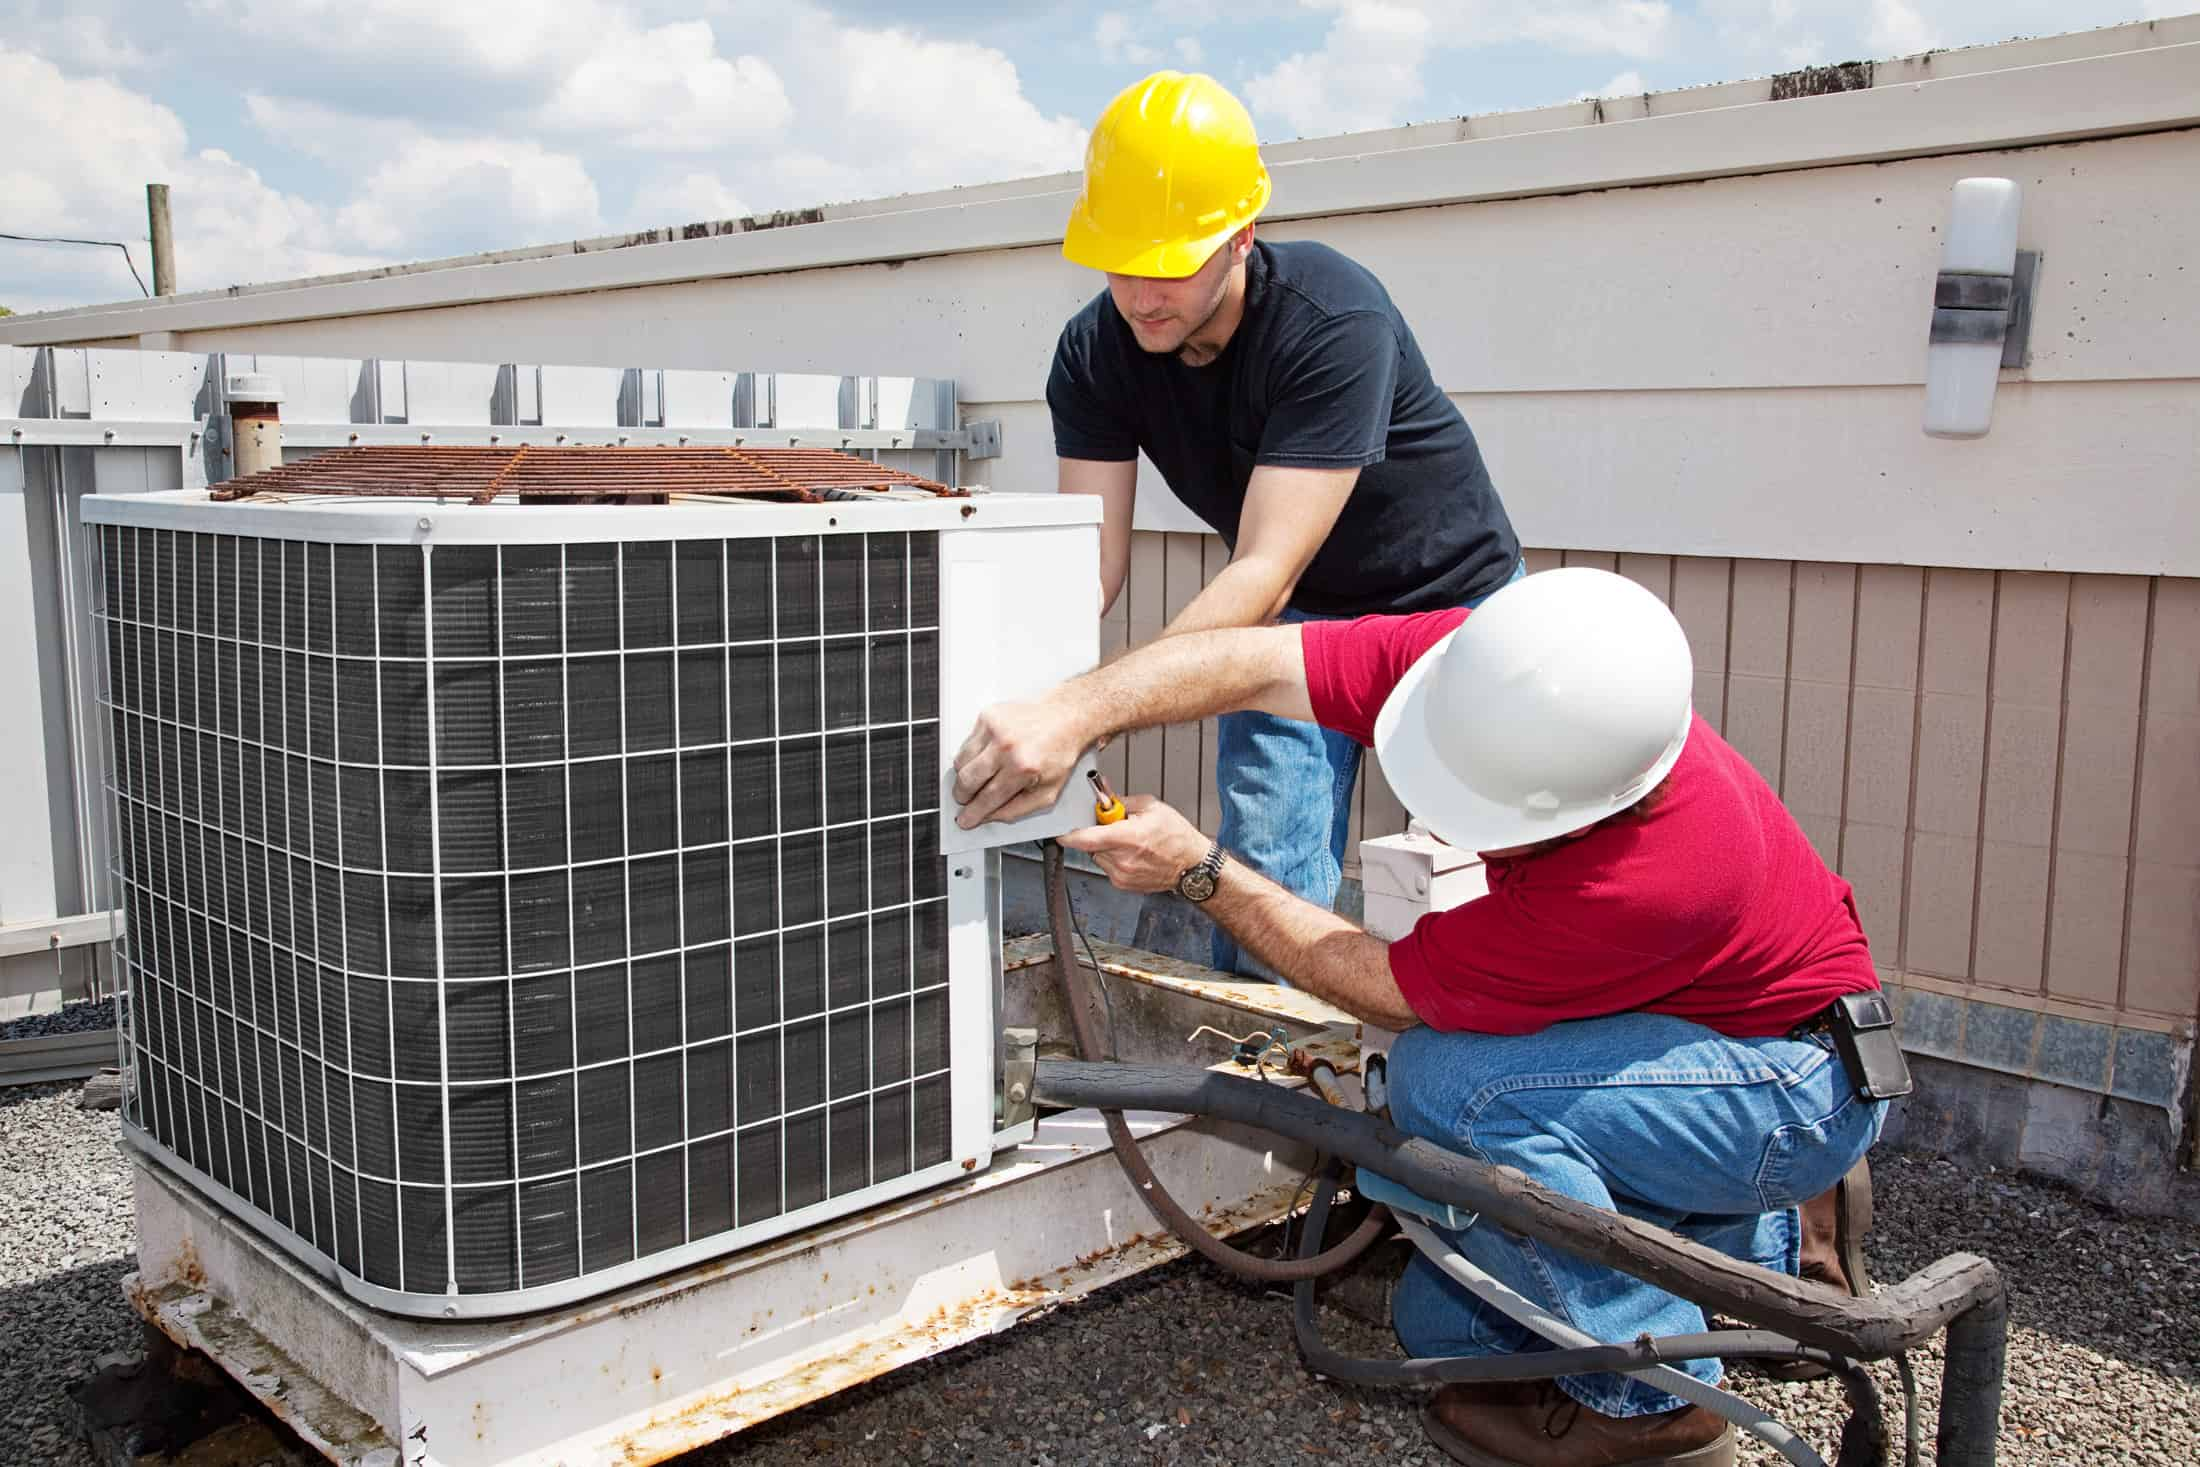 Commercial Heating & Air Conditioning | Restaurant Equipment | Commercial Refridgeration | JV Mechanical